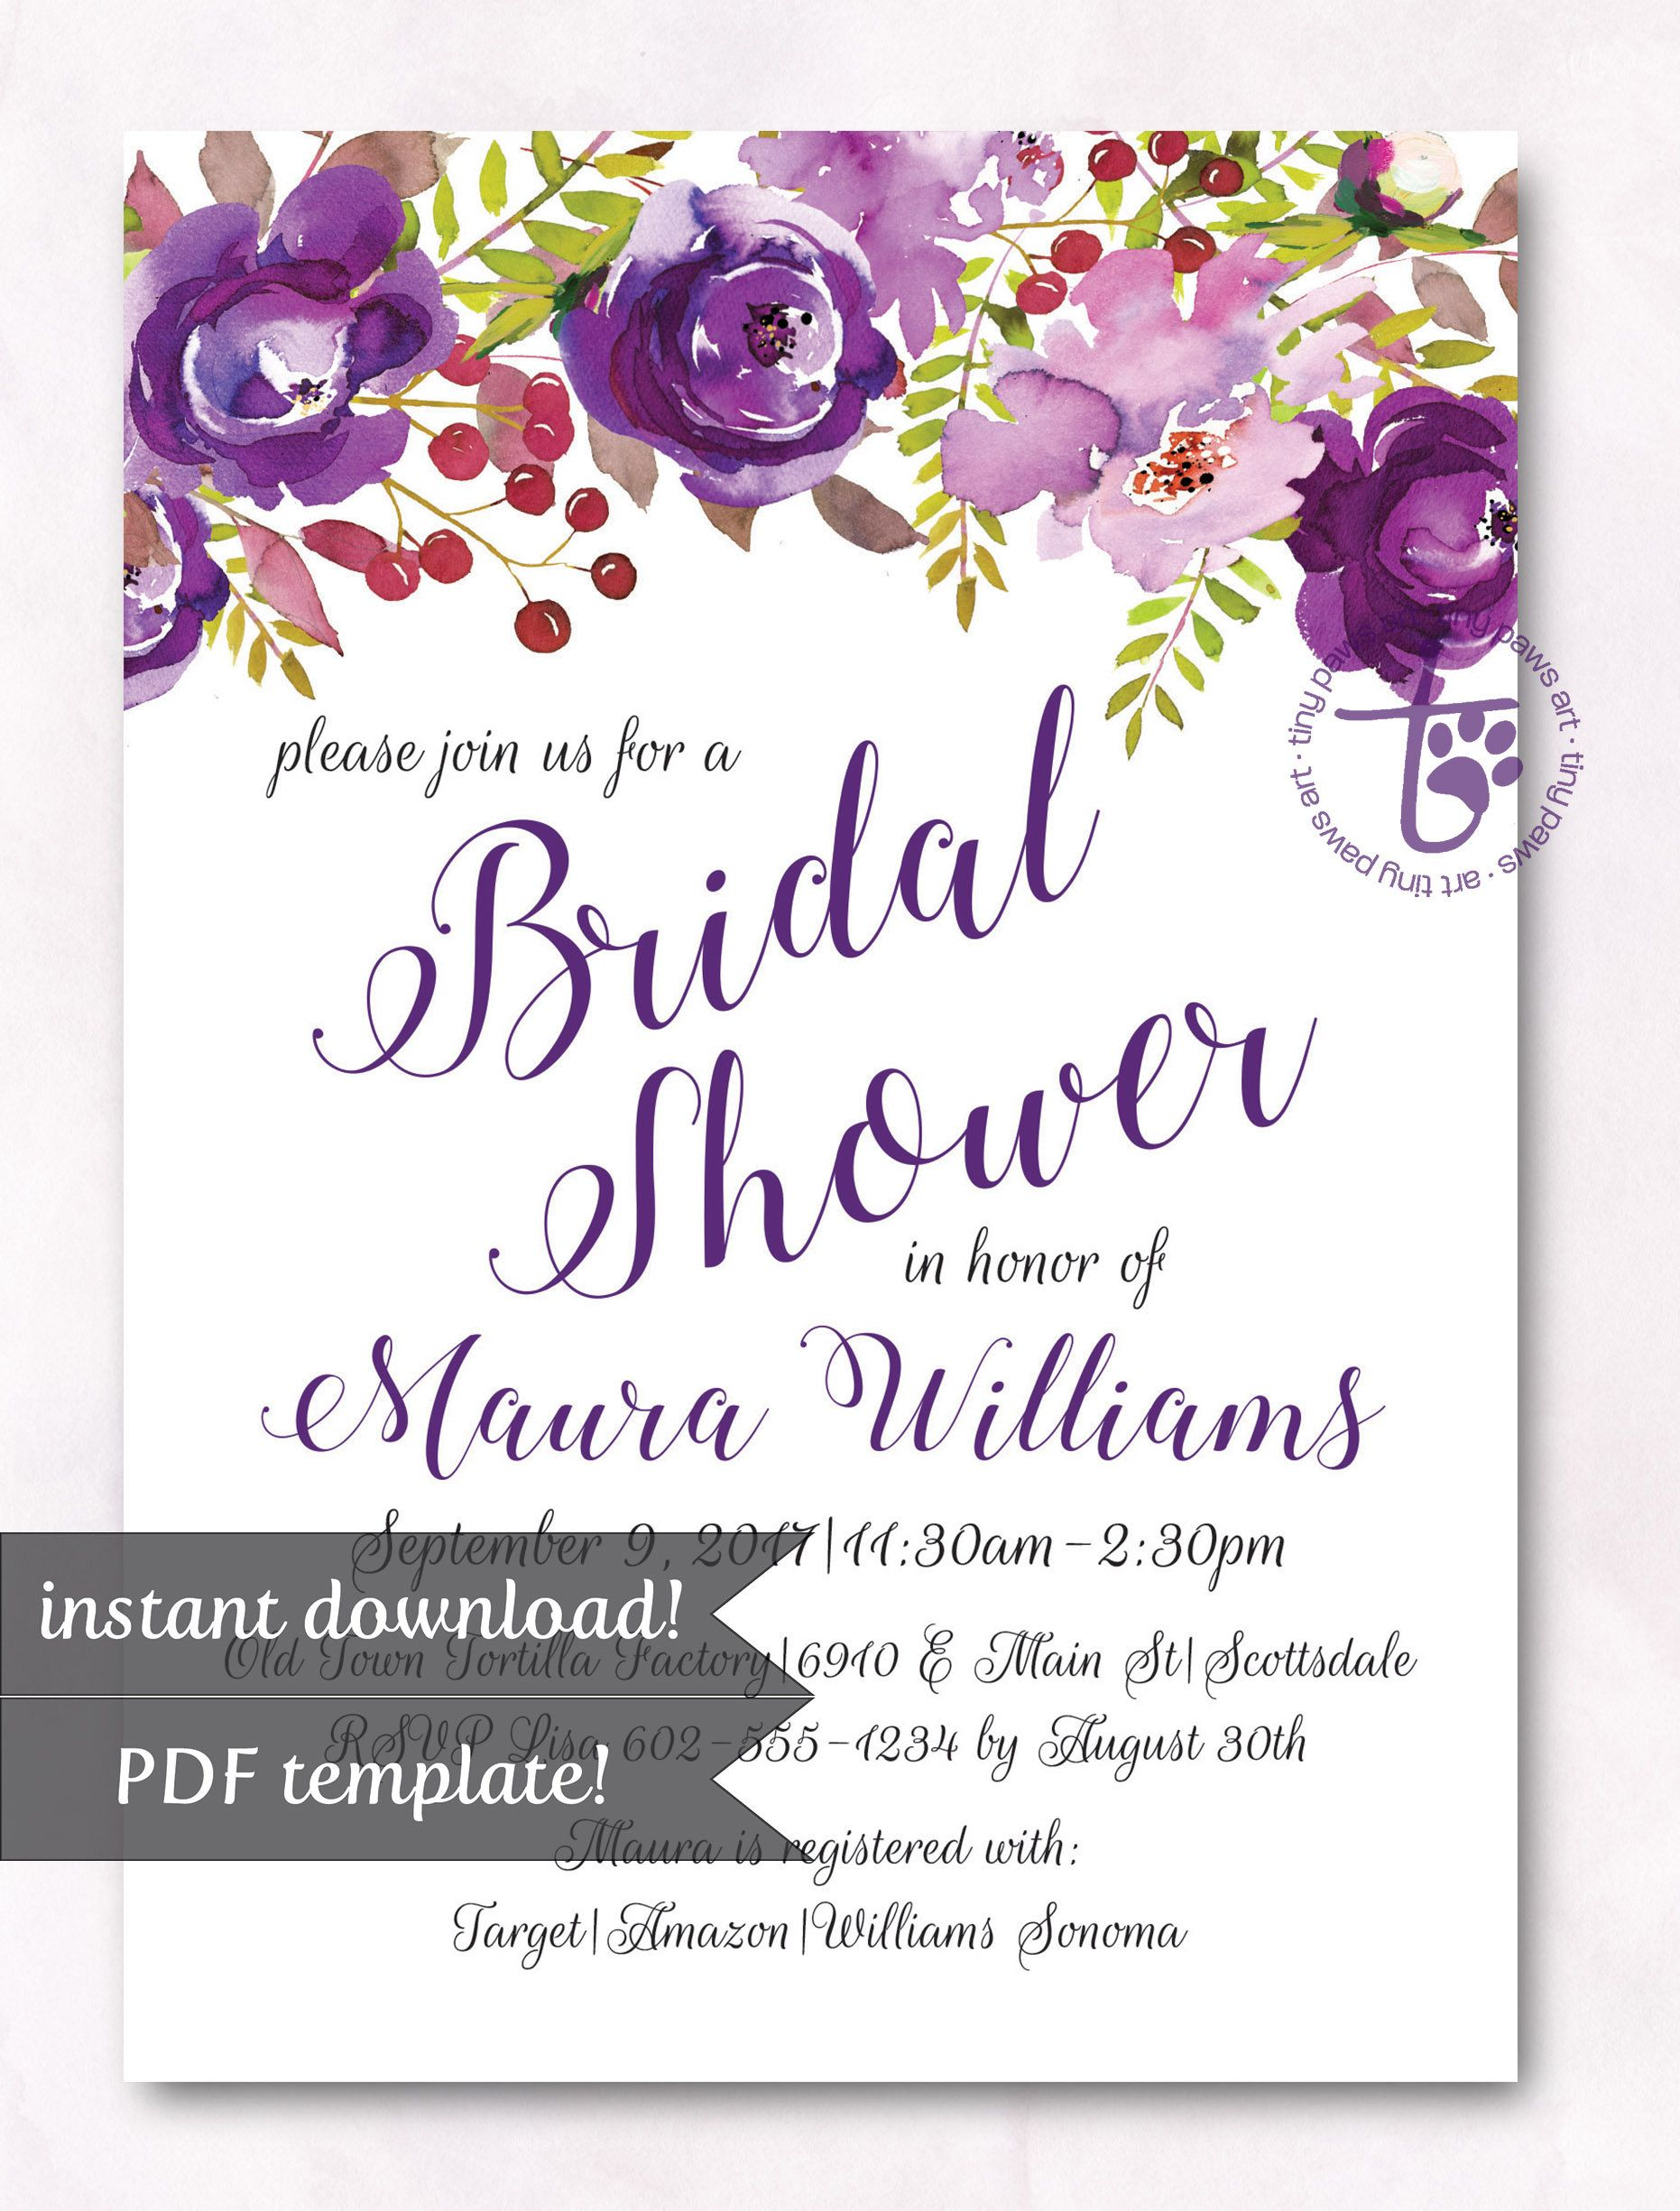 bridal shower invitation instant download bridal shower purple bridal shower invitation floral bridal shower diy invite printable by tinypawsart on